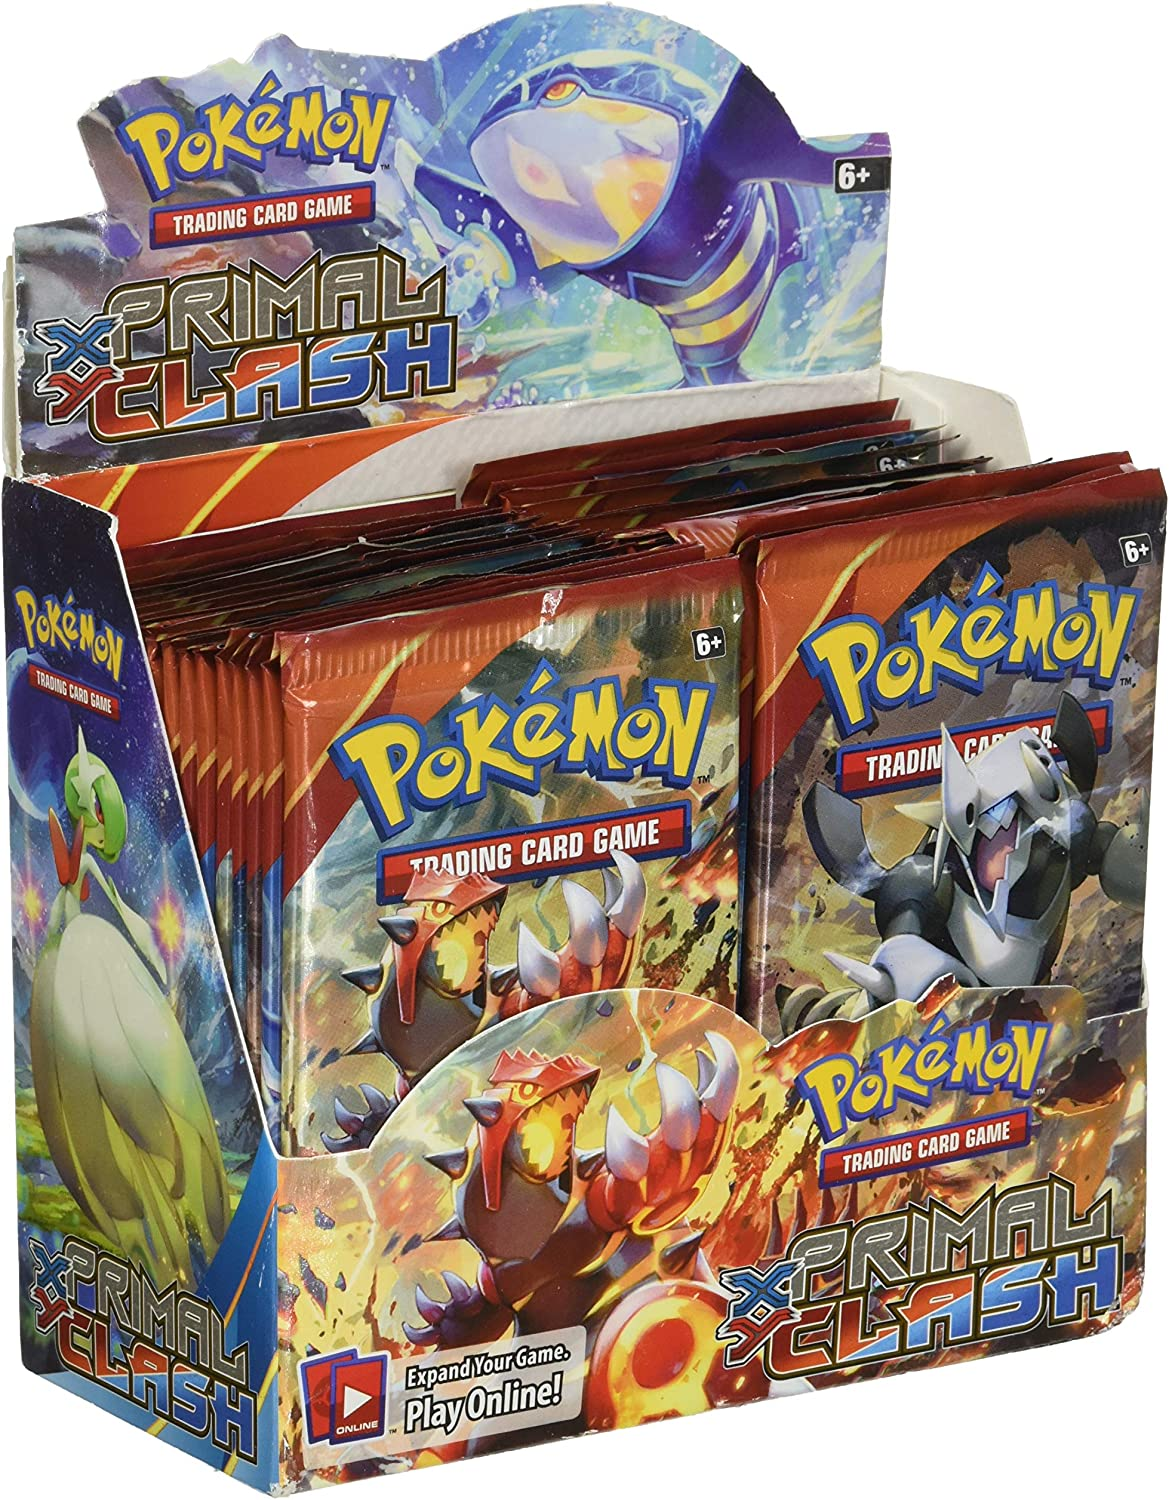 36 Booster Packs Primal Clash Booster Box Pokemon TCG Factory Sealed English